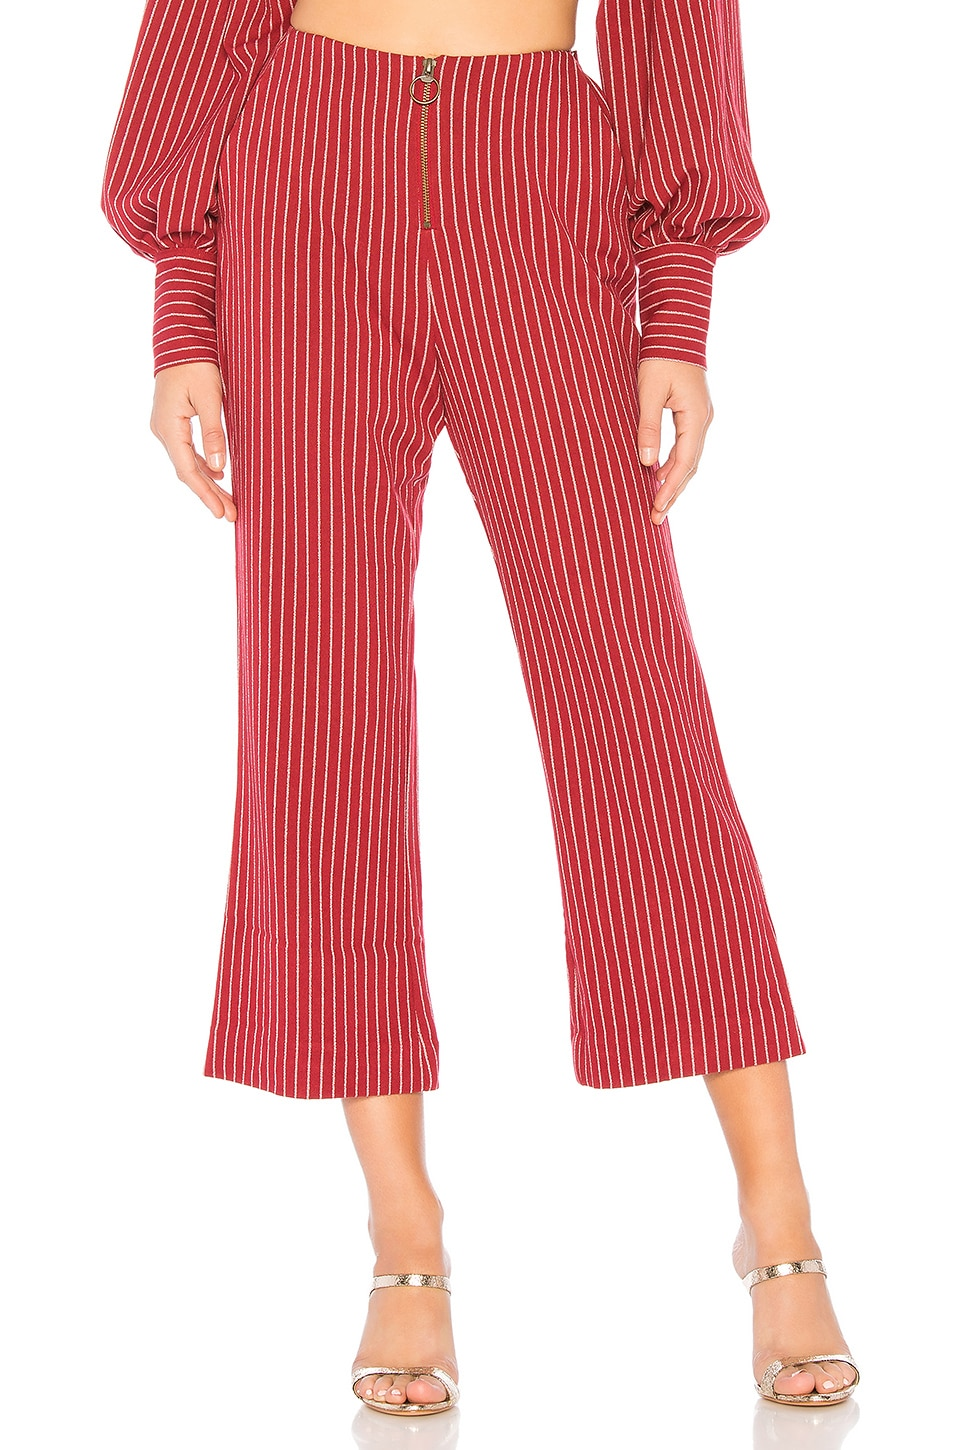 Tularosa Rachel Pant in Ruby Red